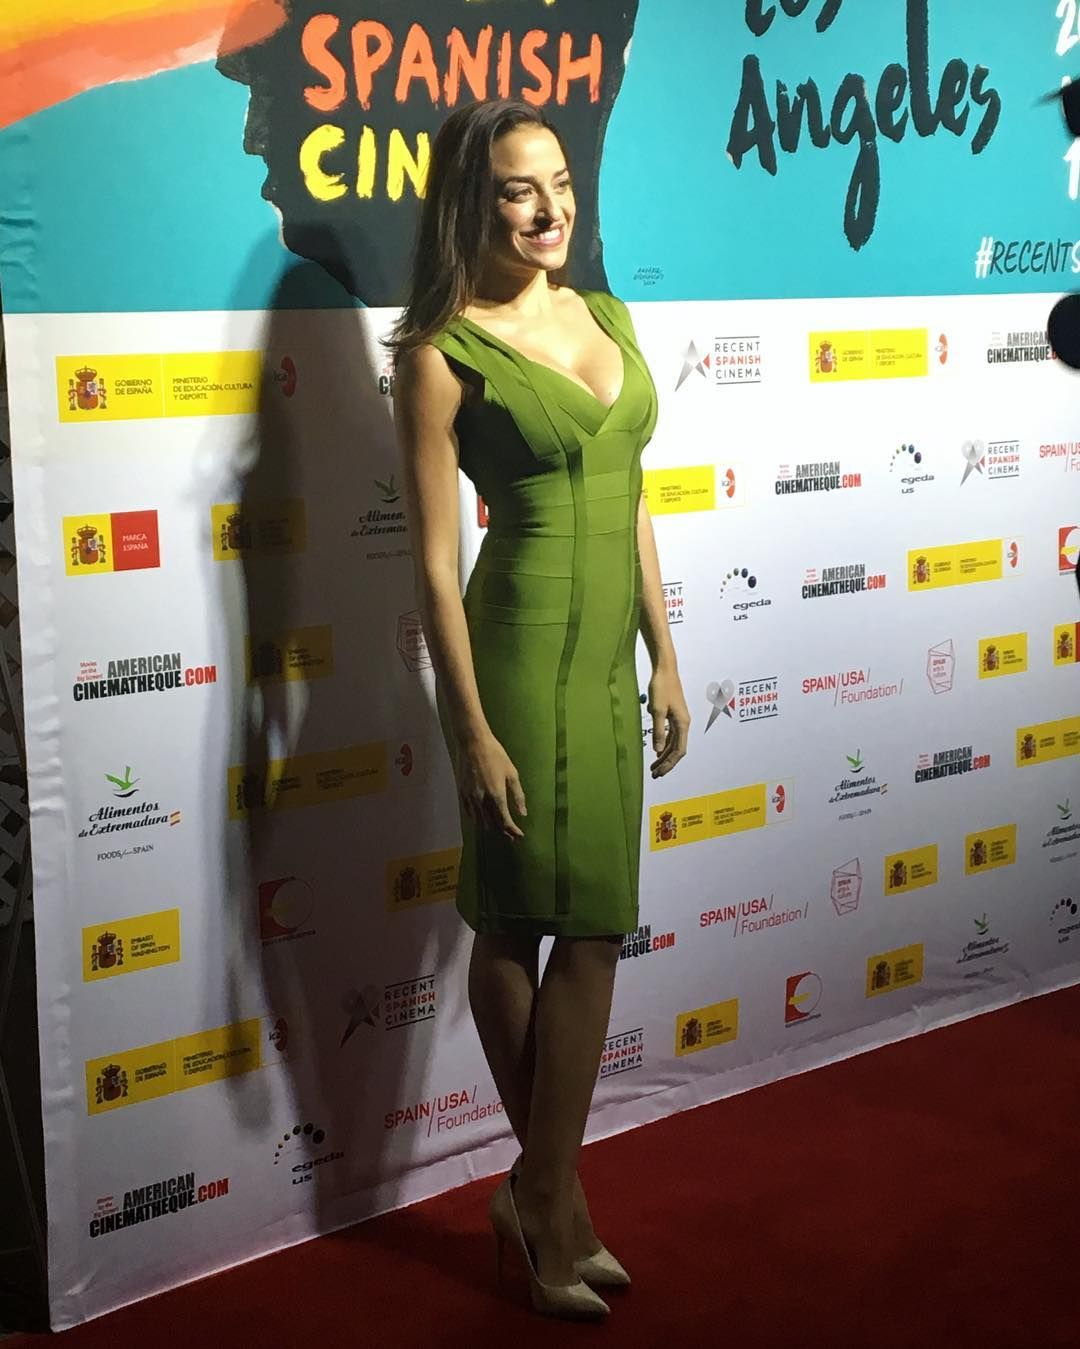 Red Carpet at the @recentspanishcinemala  . Dress from @fashionmiamistyles305  Vestido de @fashionmiamistyles305 . . #redcarpet #night #festival #losangeles #california #hollywood #spanish #night #photocall